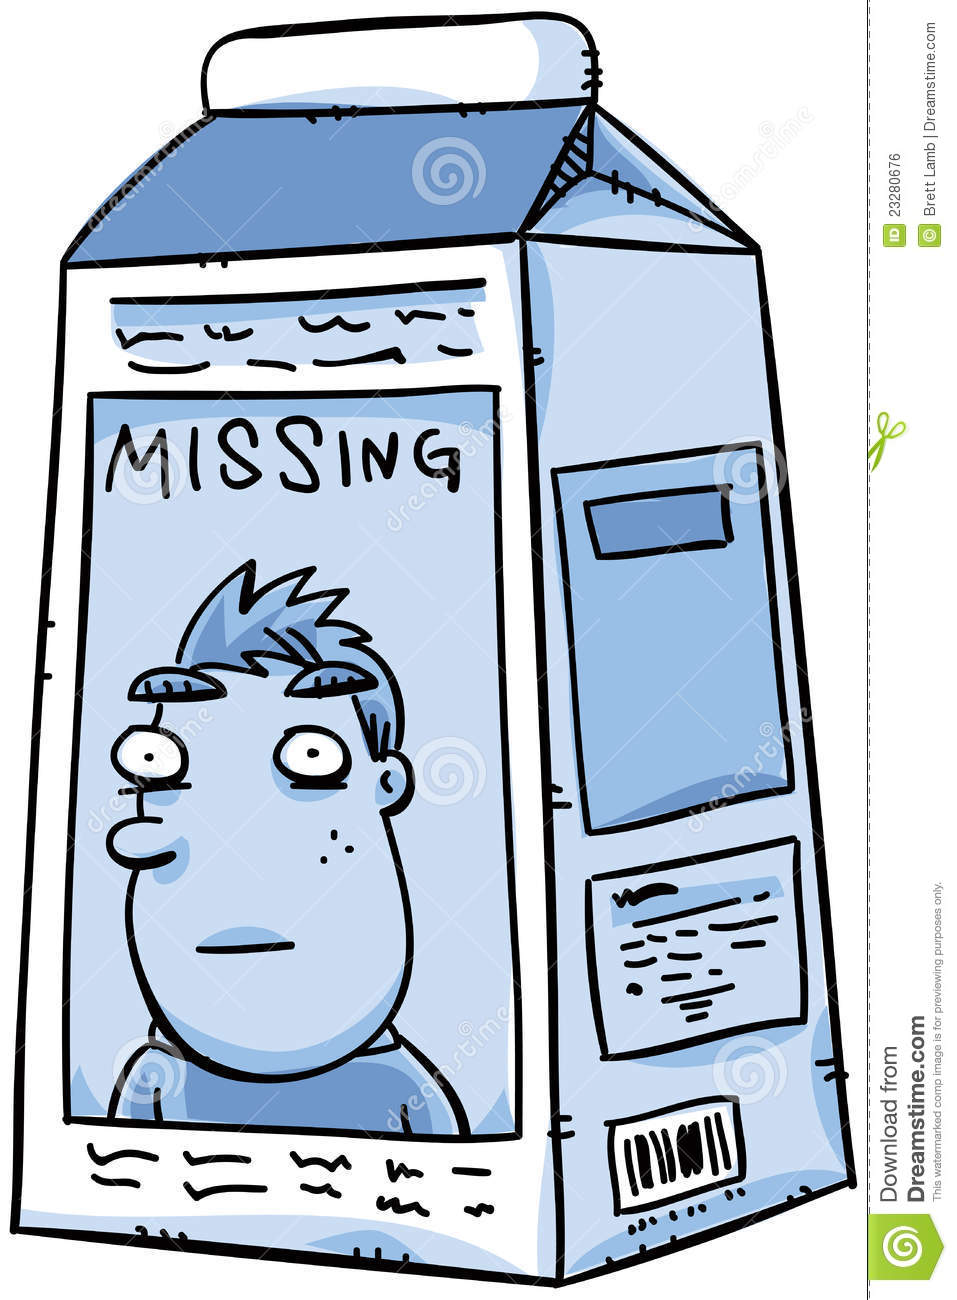 Missing Milk stock illustration. Illustration of object ...